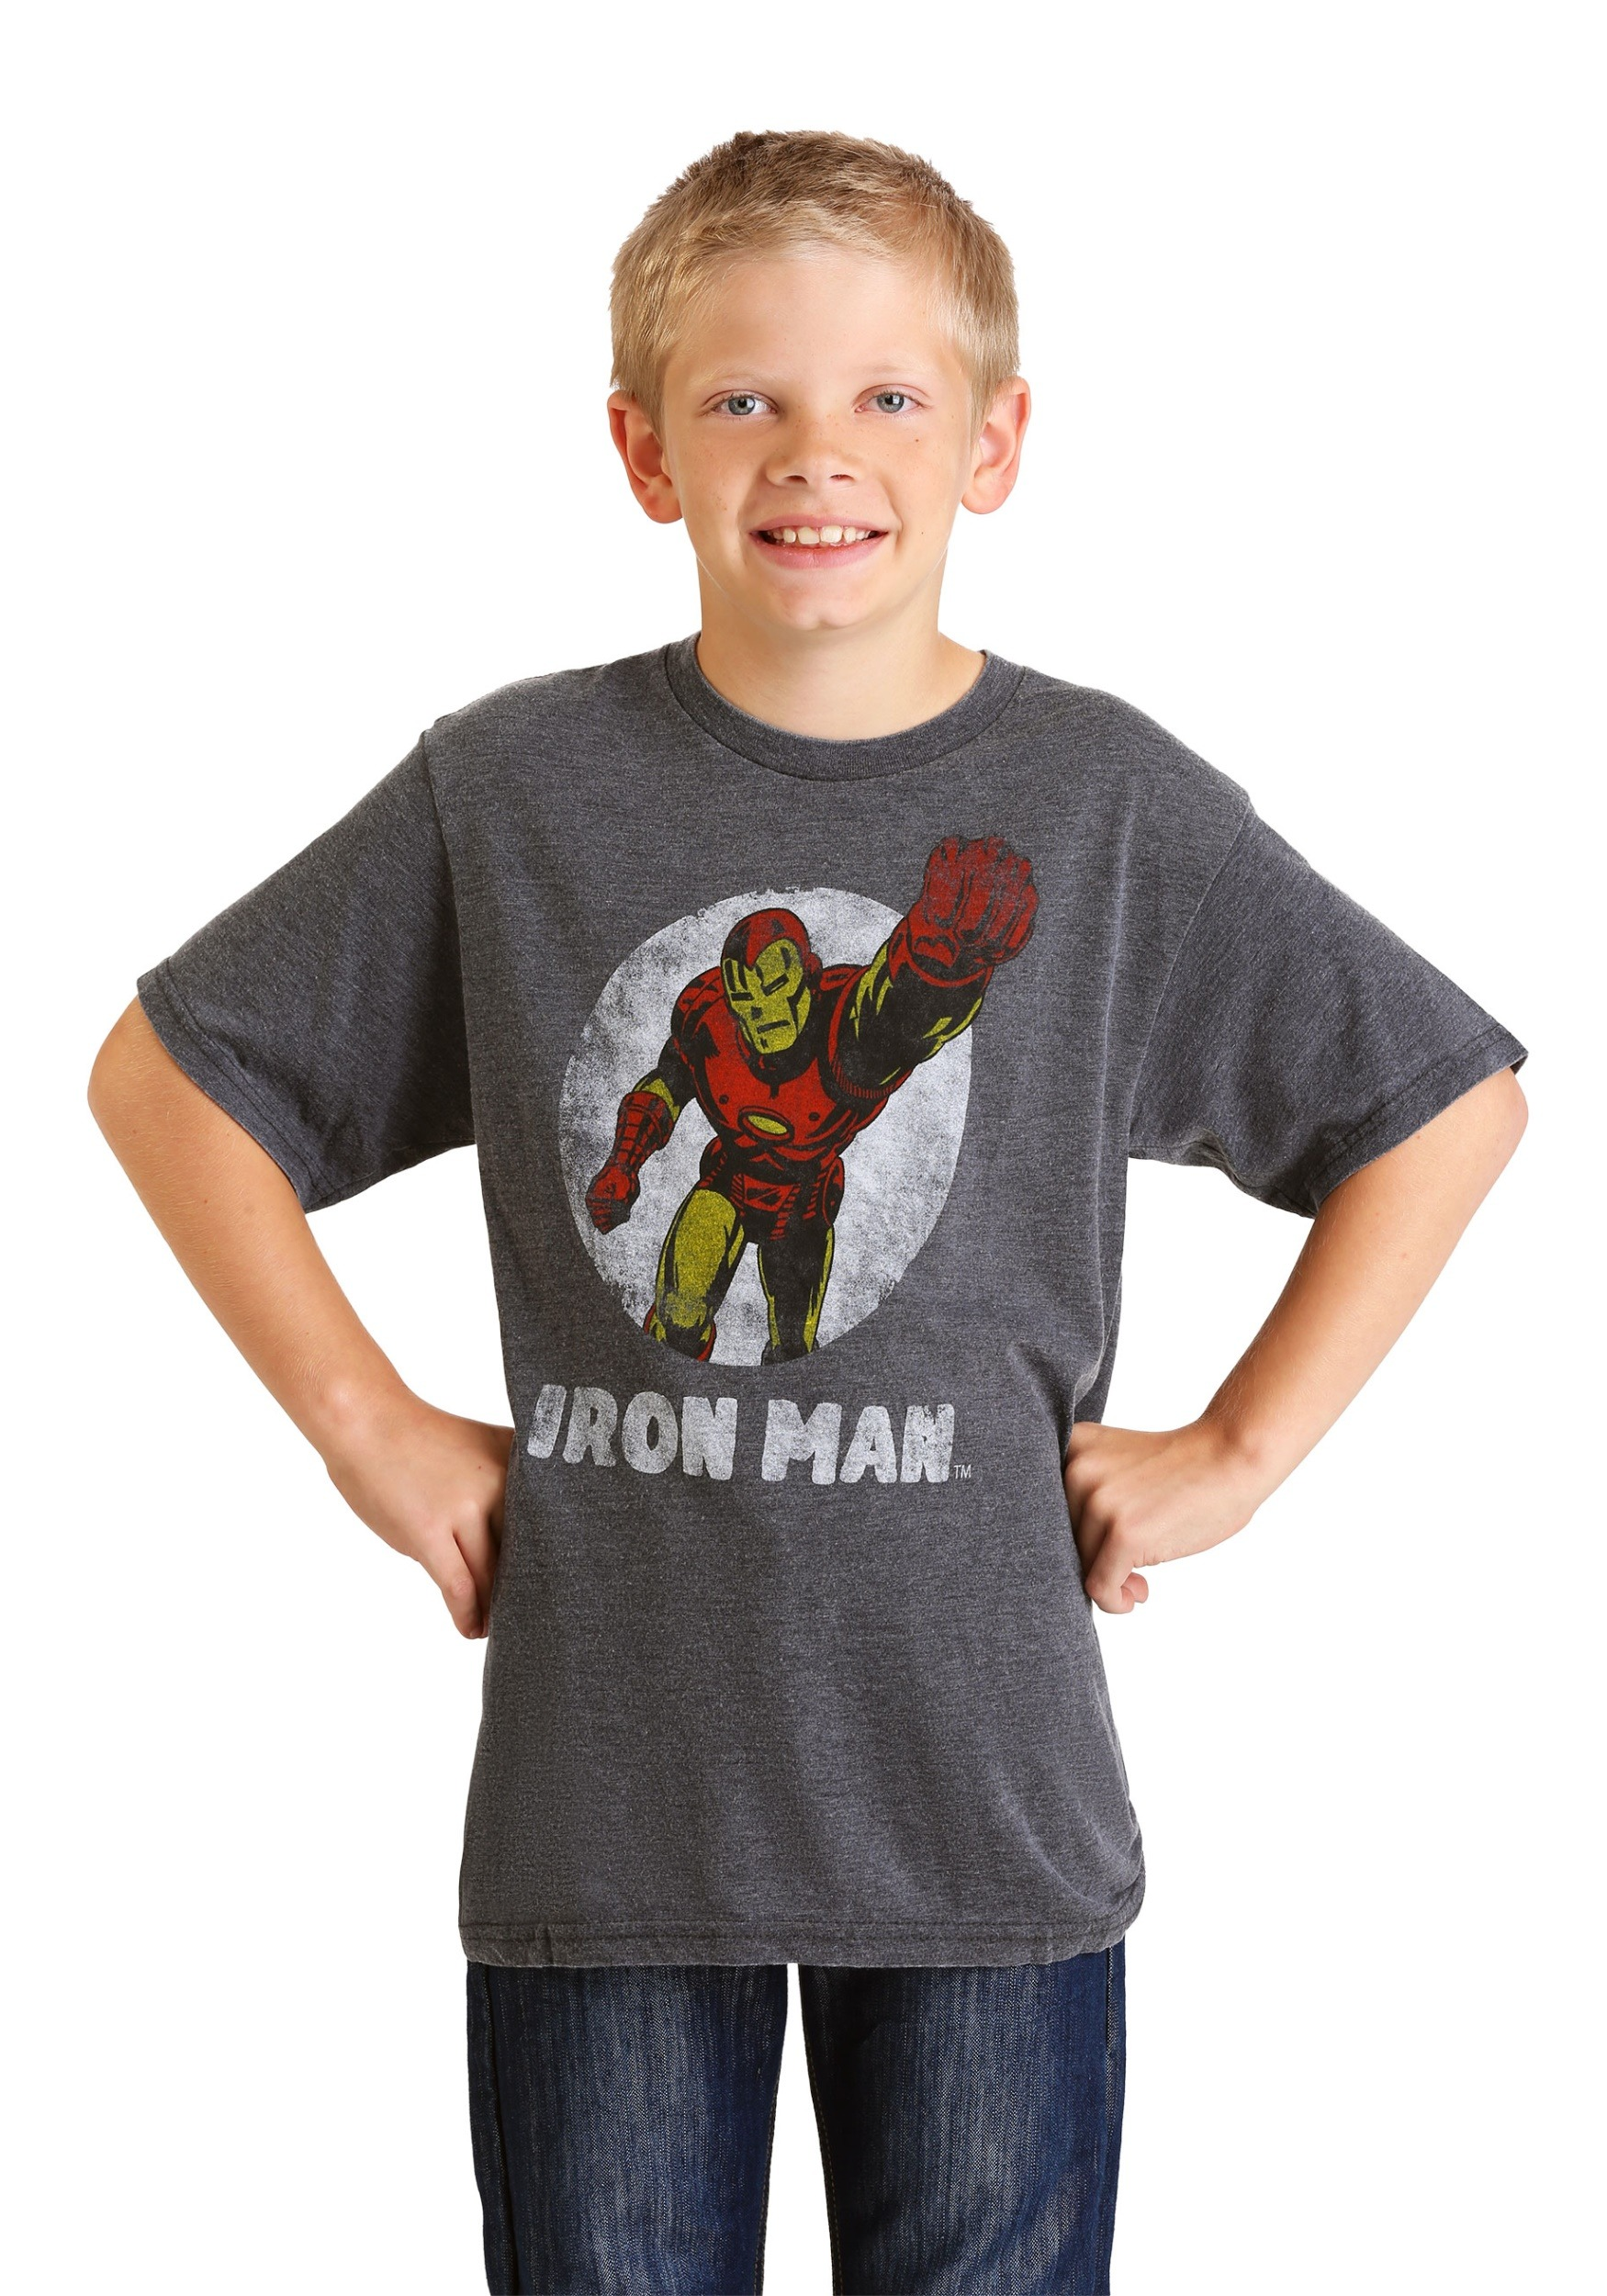 74a9c83160 Marvel Iron Man Charcoal Heather Burnout T-Shirt for Kids